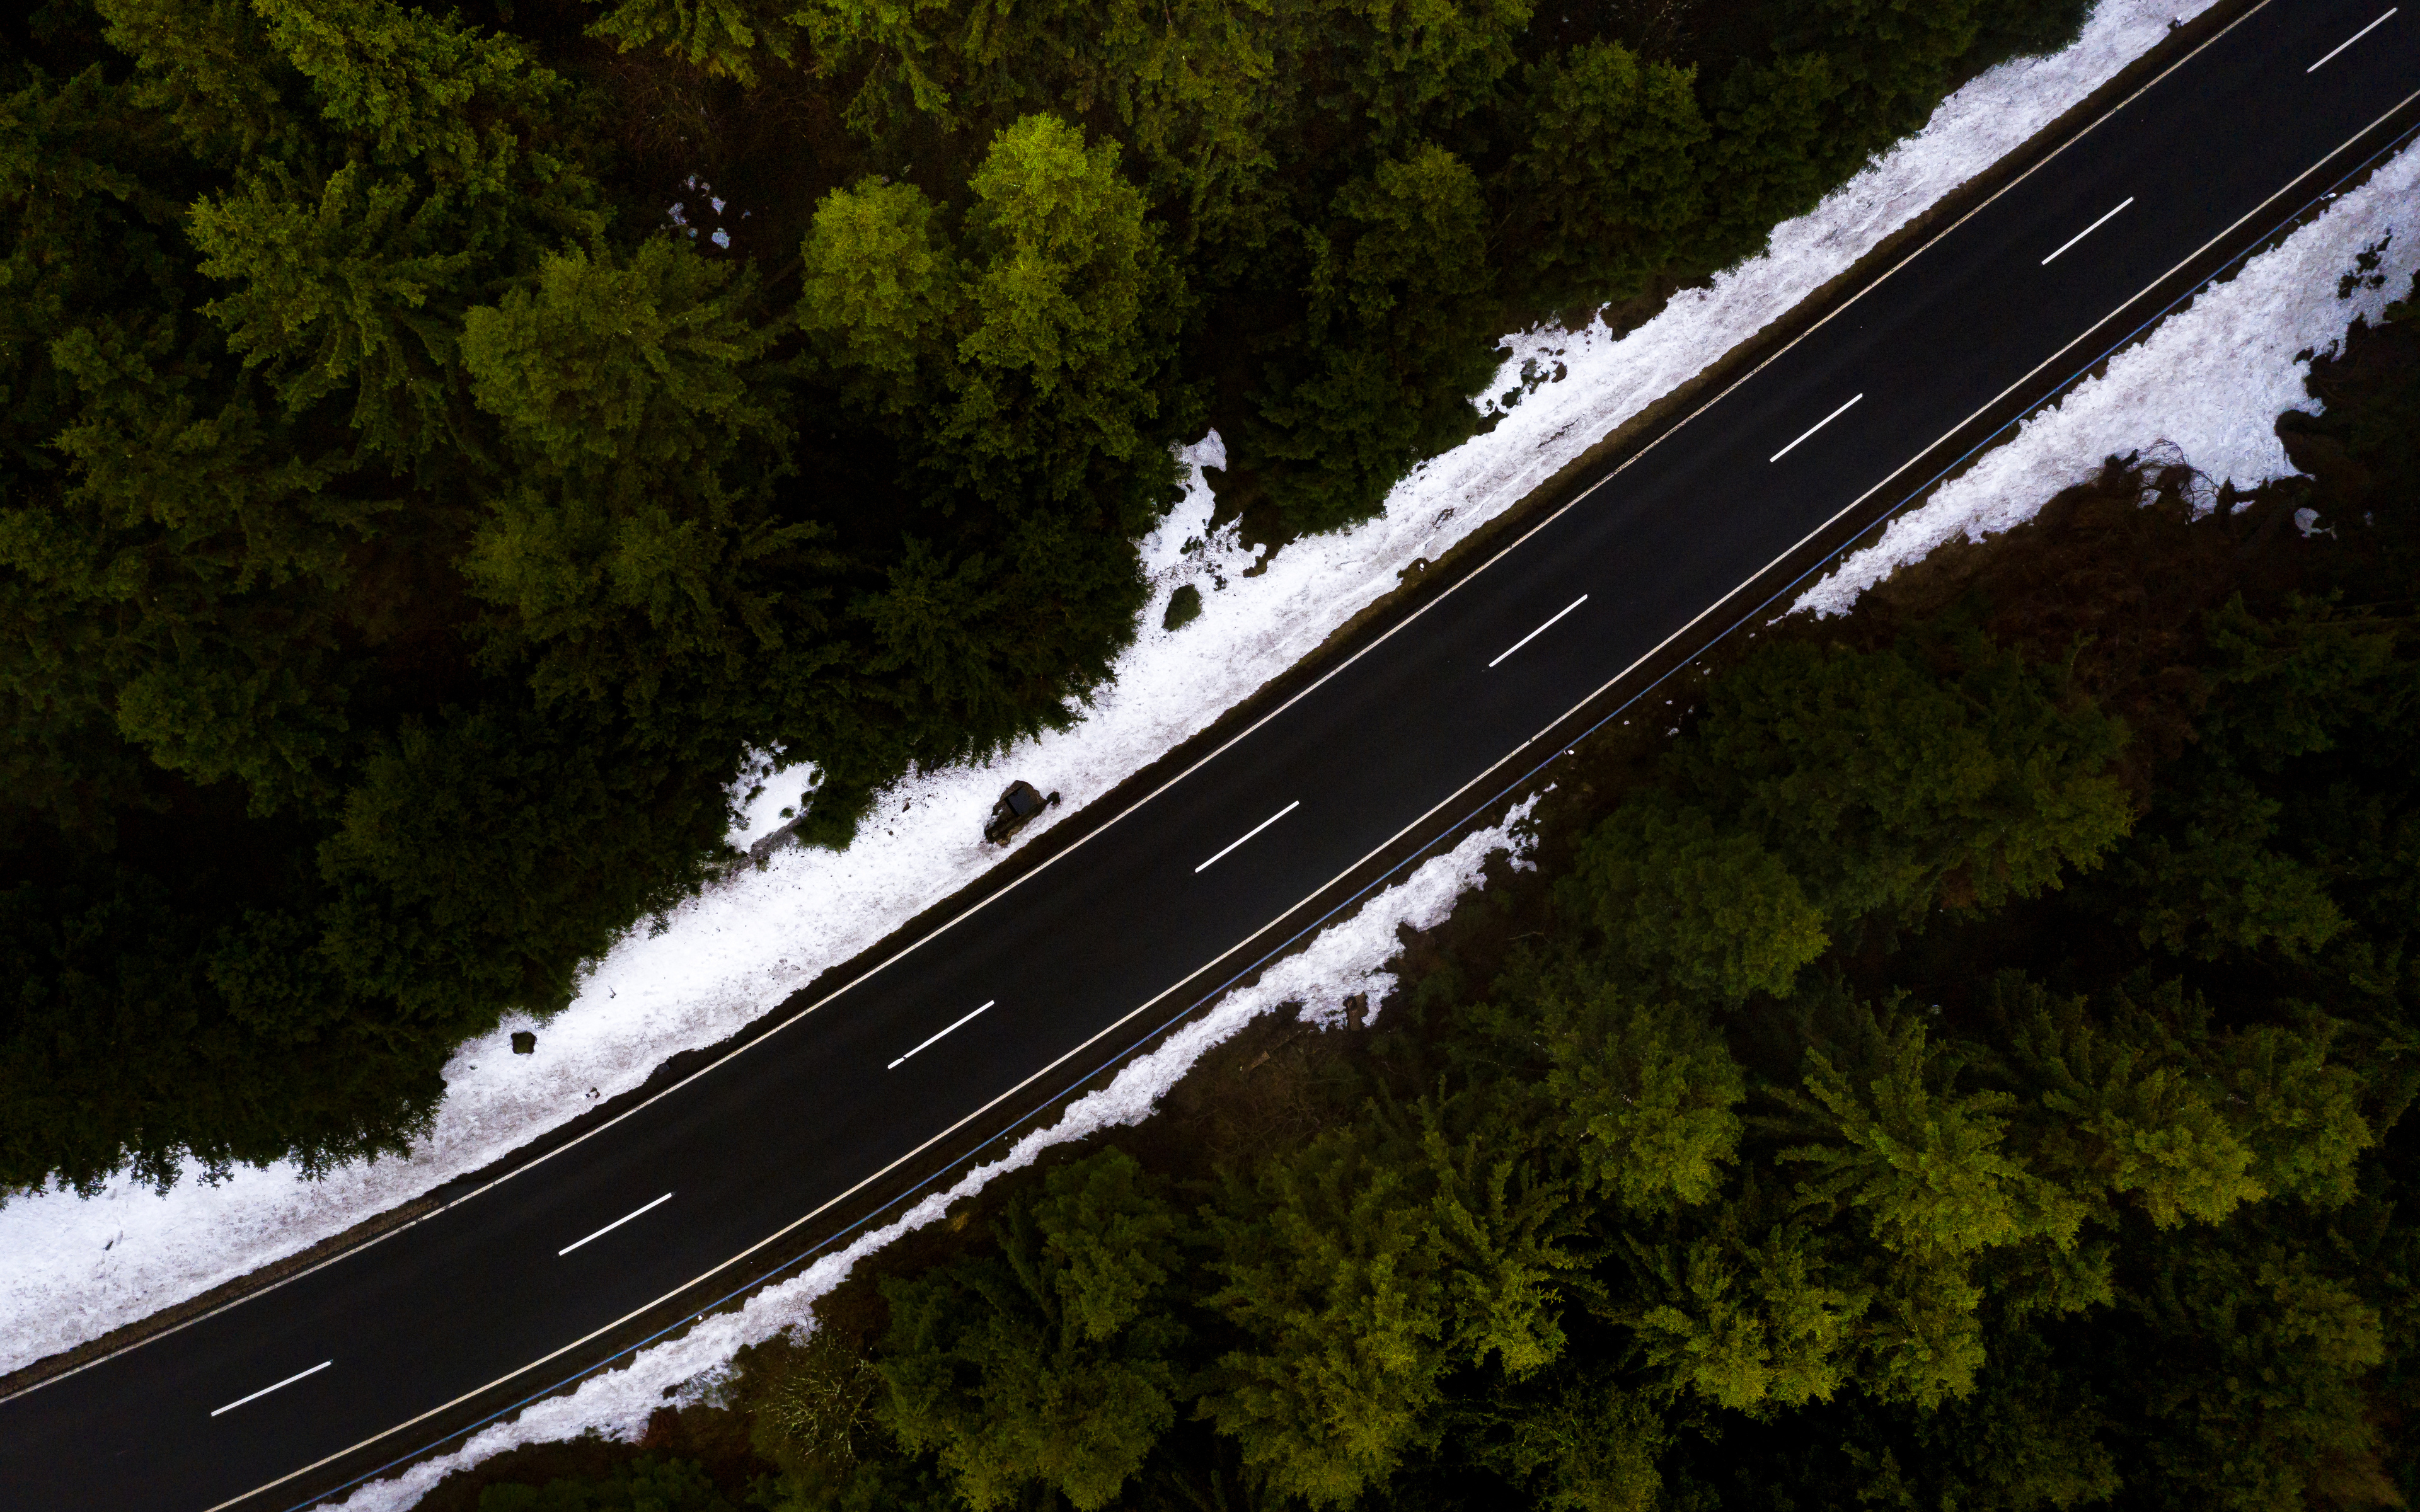 road-through-woods-snow-on-roads-side-5k-74.jpg